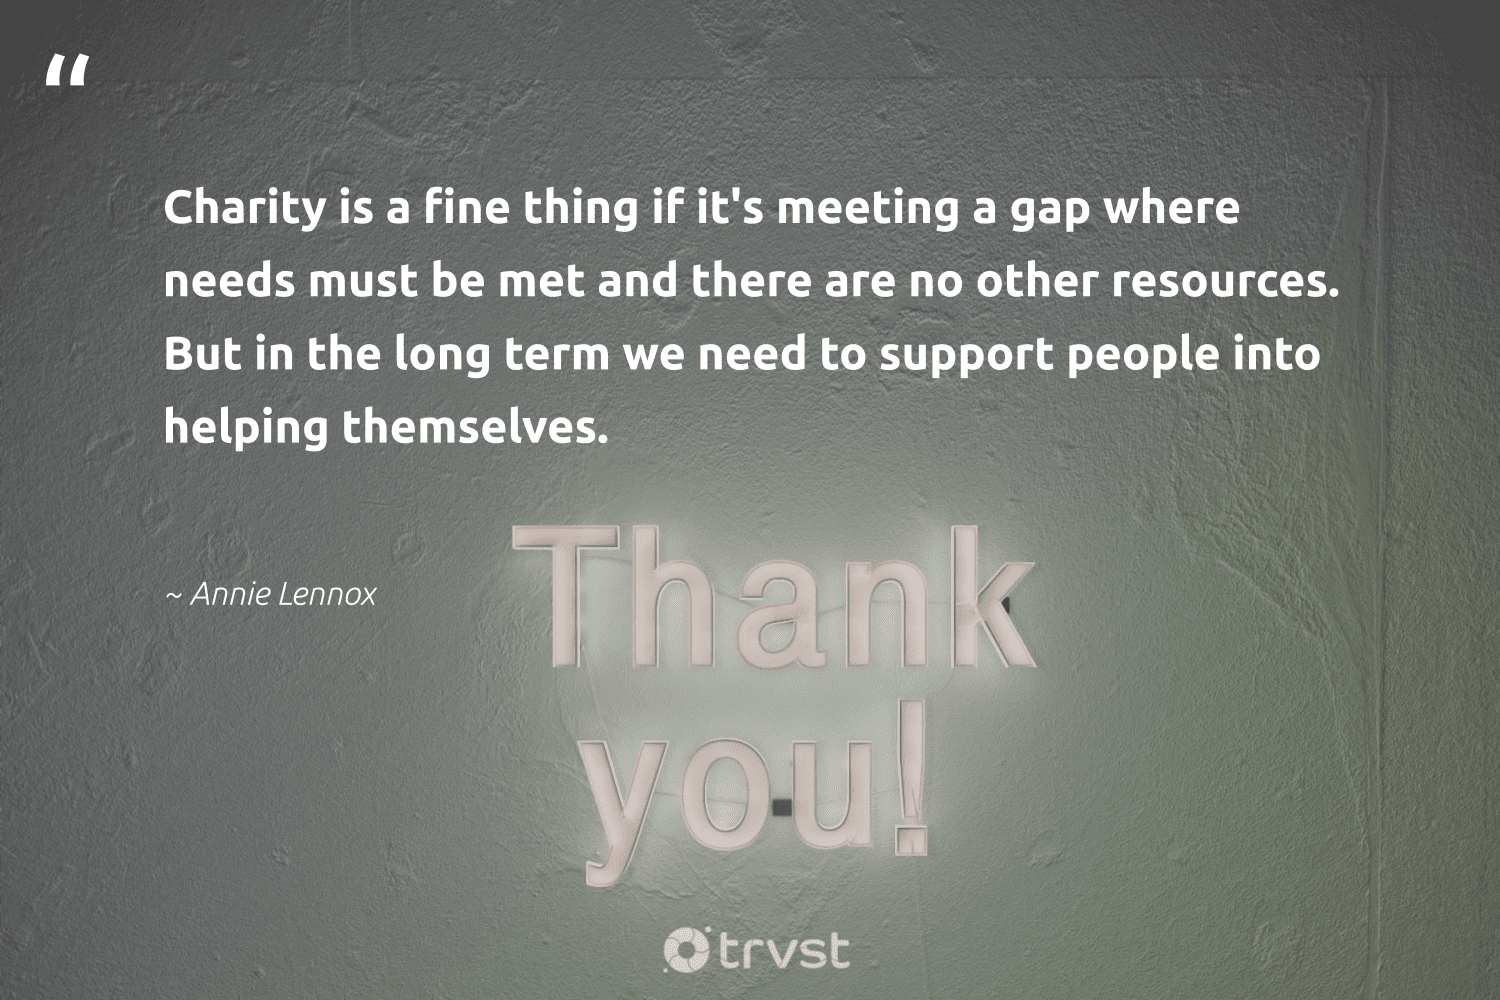 """""""Charity is a fine thing if it's meeting a gap where needs must be met and there are no other resources. But in the long term we need to support people into helping themselves.""""  - Annie Lennox #trvst #quotes #dogood #takeaction #makeadifference #ecoconscious #socialchange #thinkgreen #society #bethechange #workingtogether #changetheworld"""